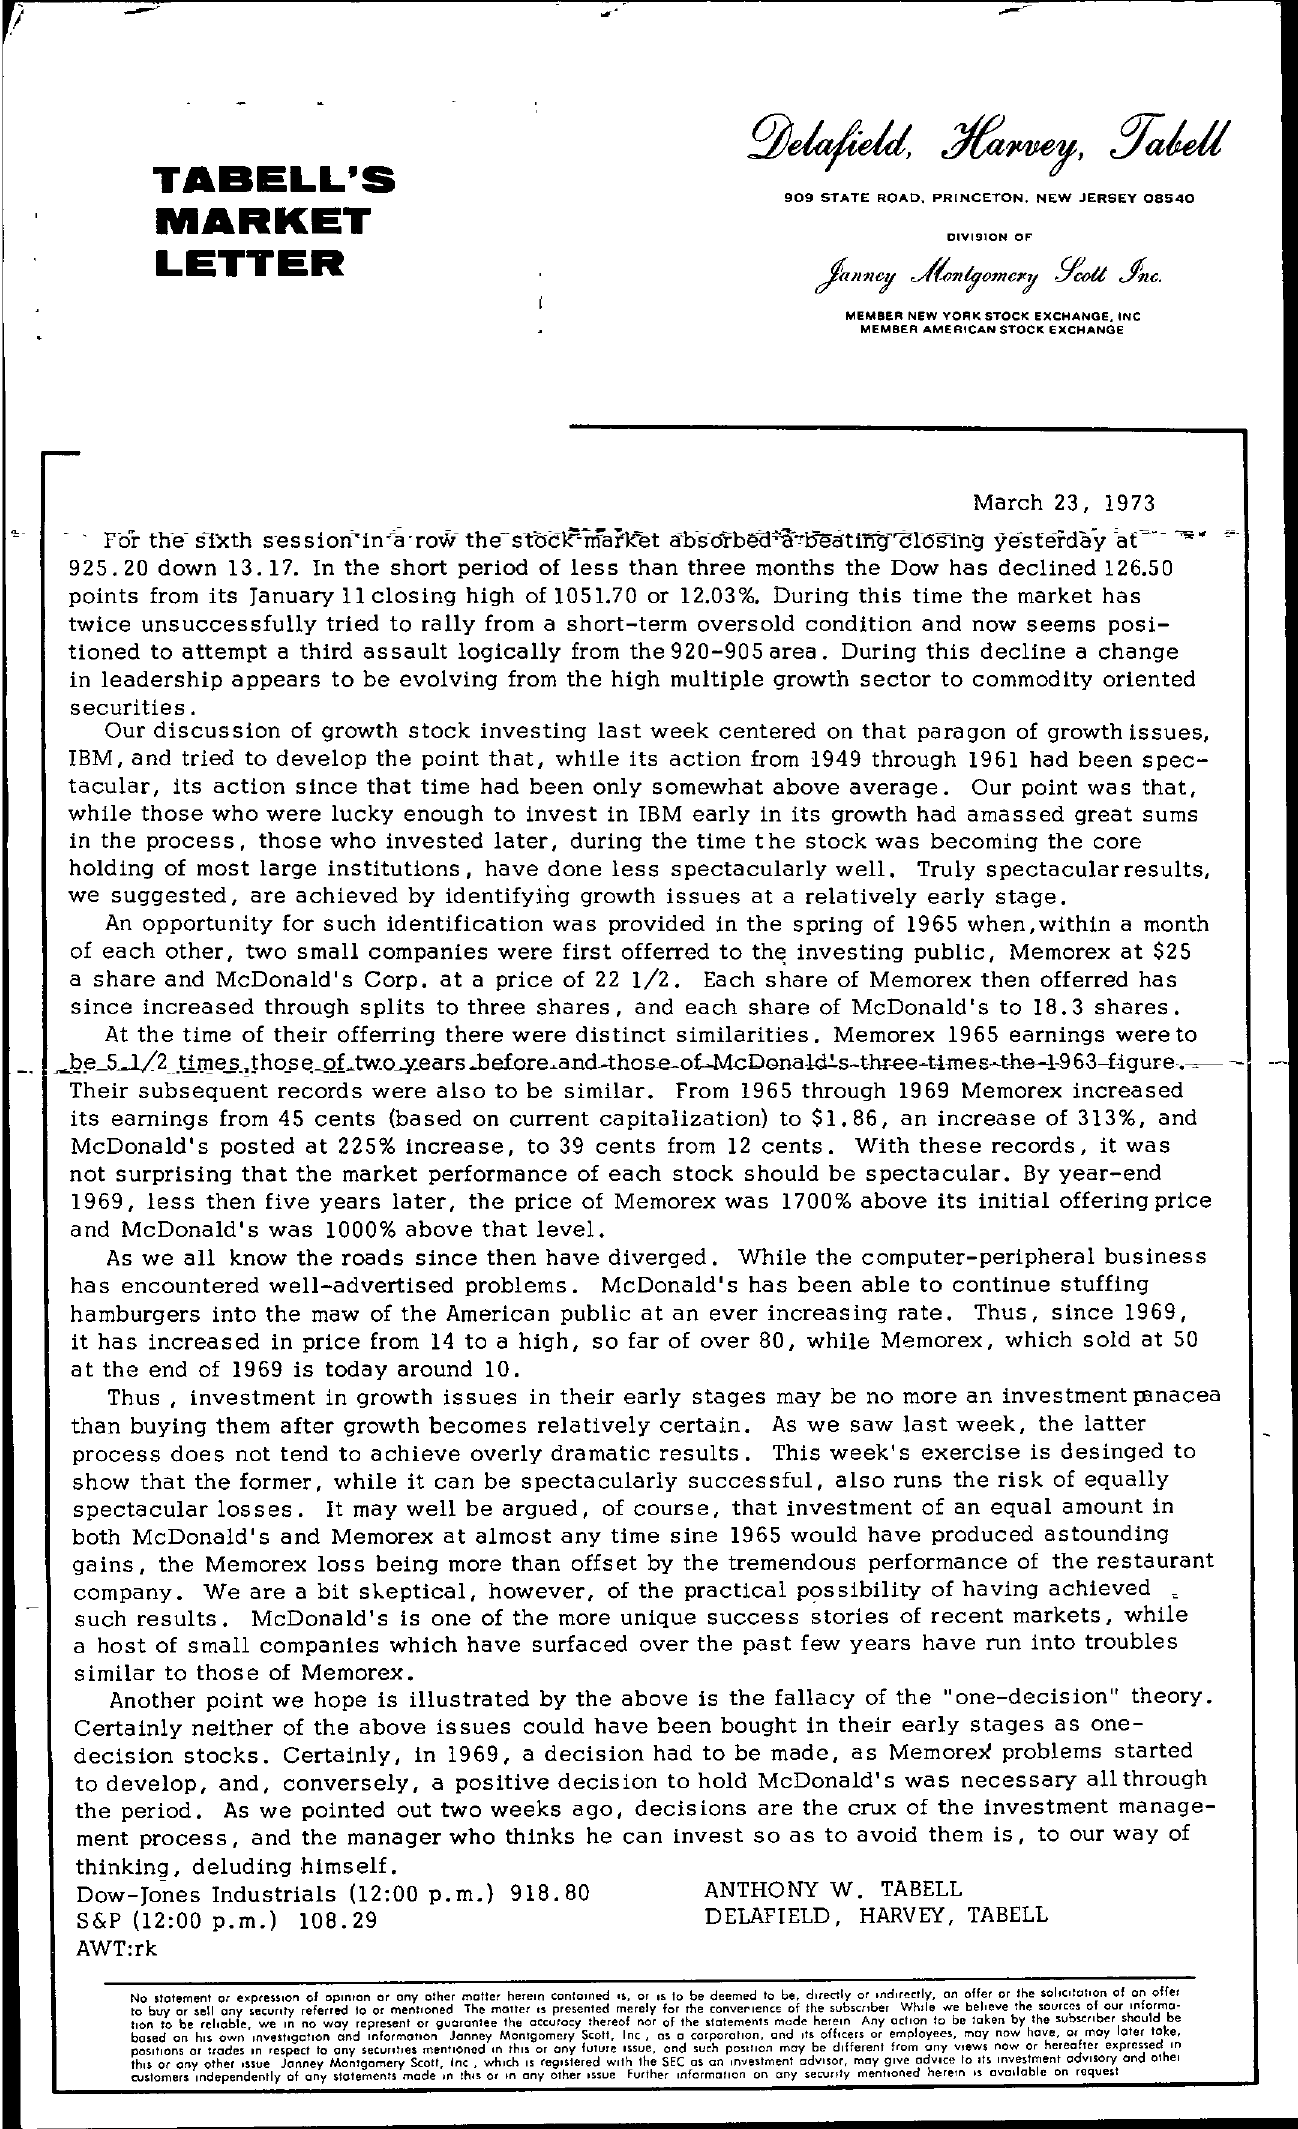 Tabell's Market Letter - March 23, 1973